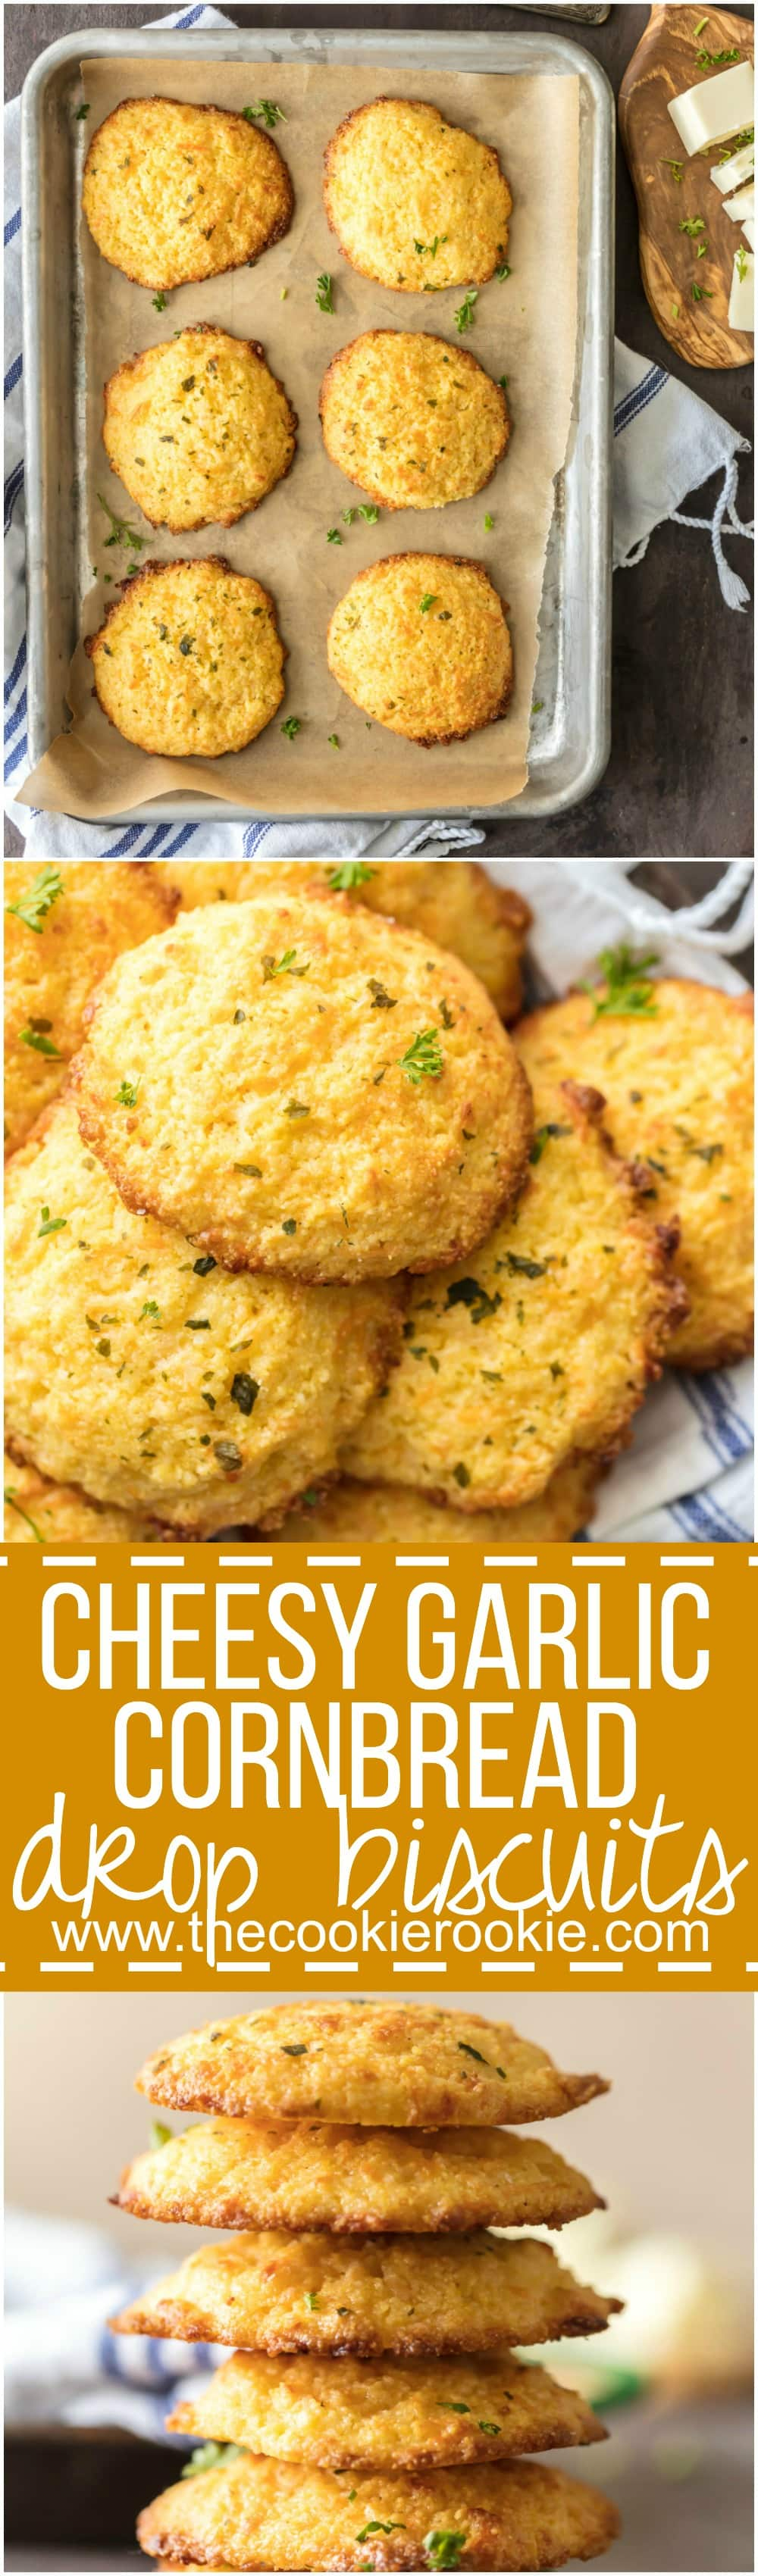 Cheesy Garlic Cornbread Drop Biscuits are EASY, delicious, and perfect for the holidays! These Cornbread Drop Biscuits always make an appearance on our Thanksgiving and Christmas tables!